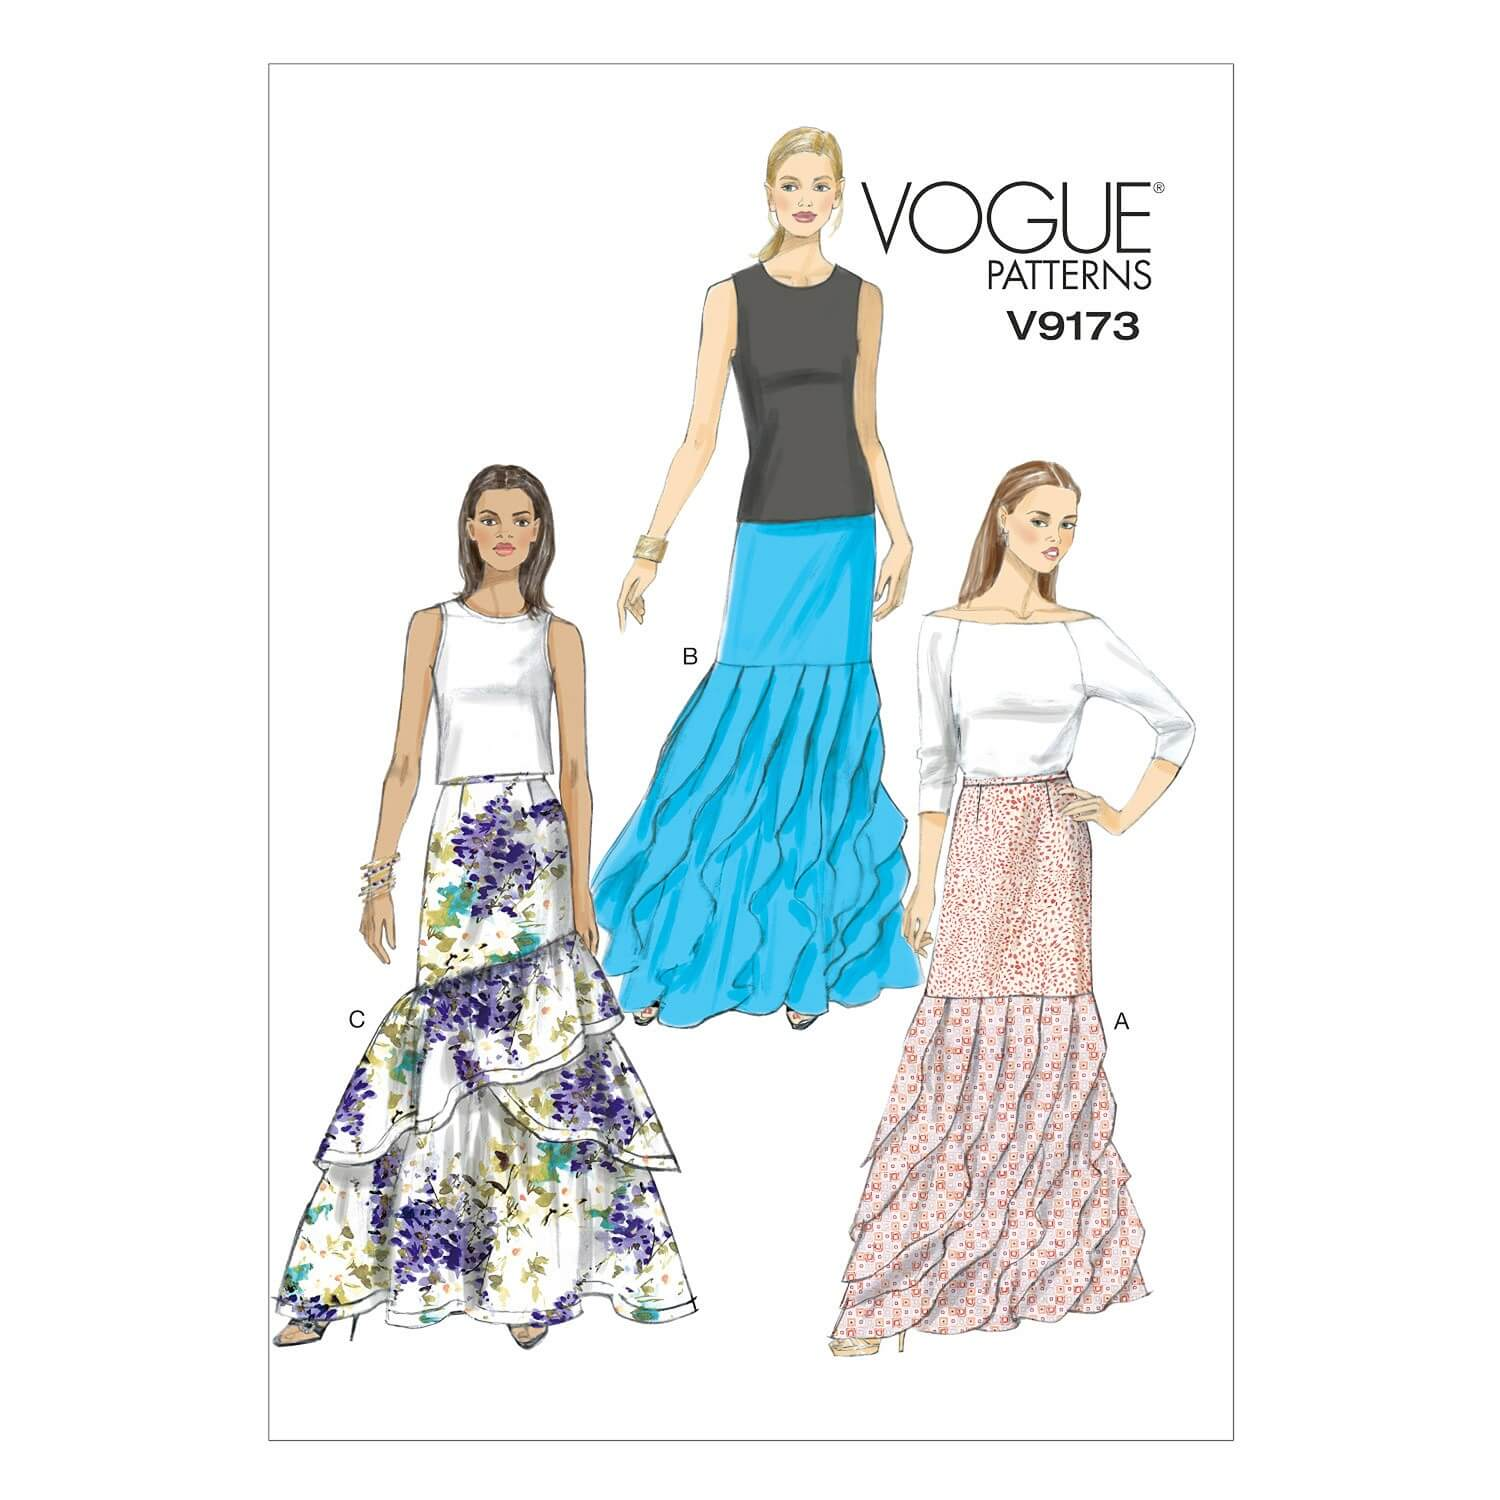 Vogue Sewing Pattern V9173 Women's Floor Length Tiered Skirts